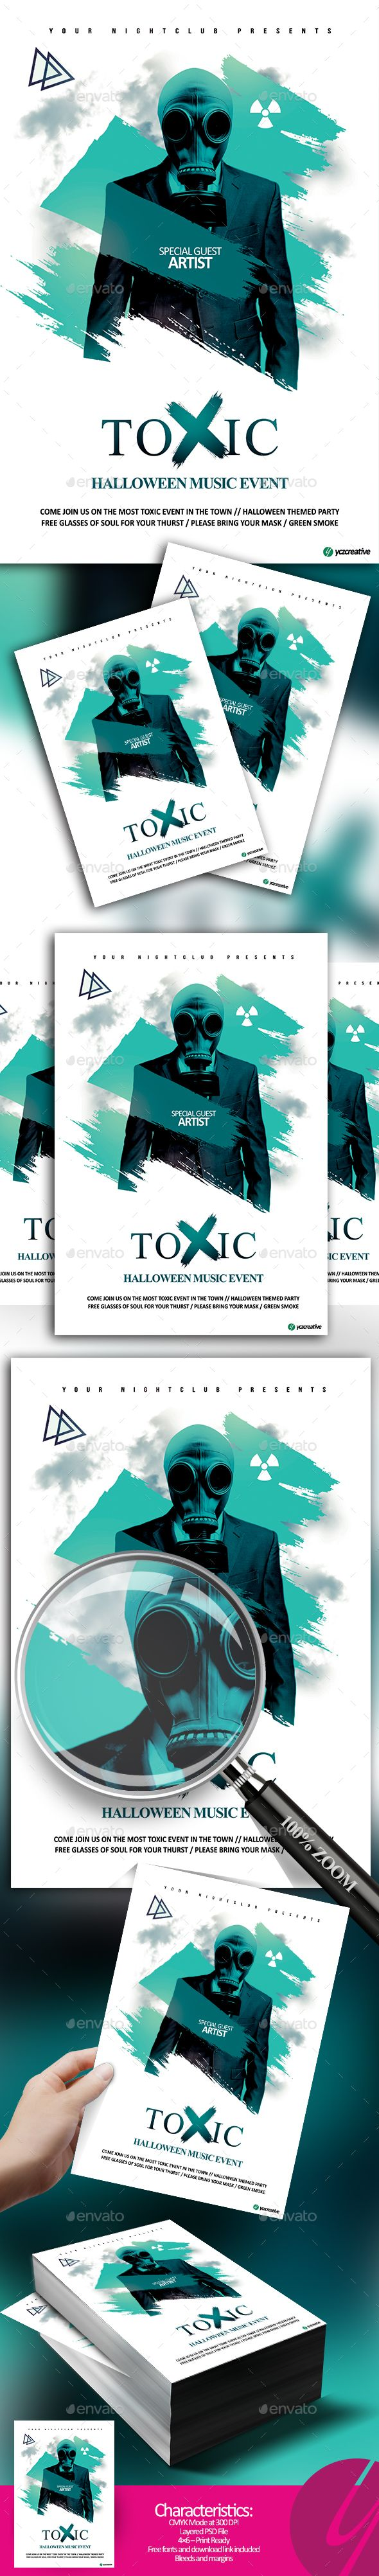 Toxic Music Event Flyer Template PSD